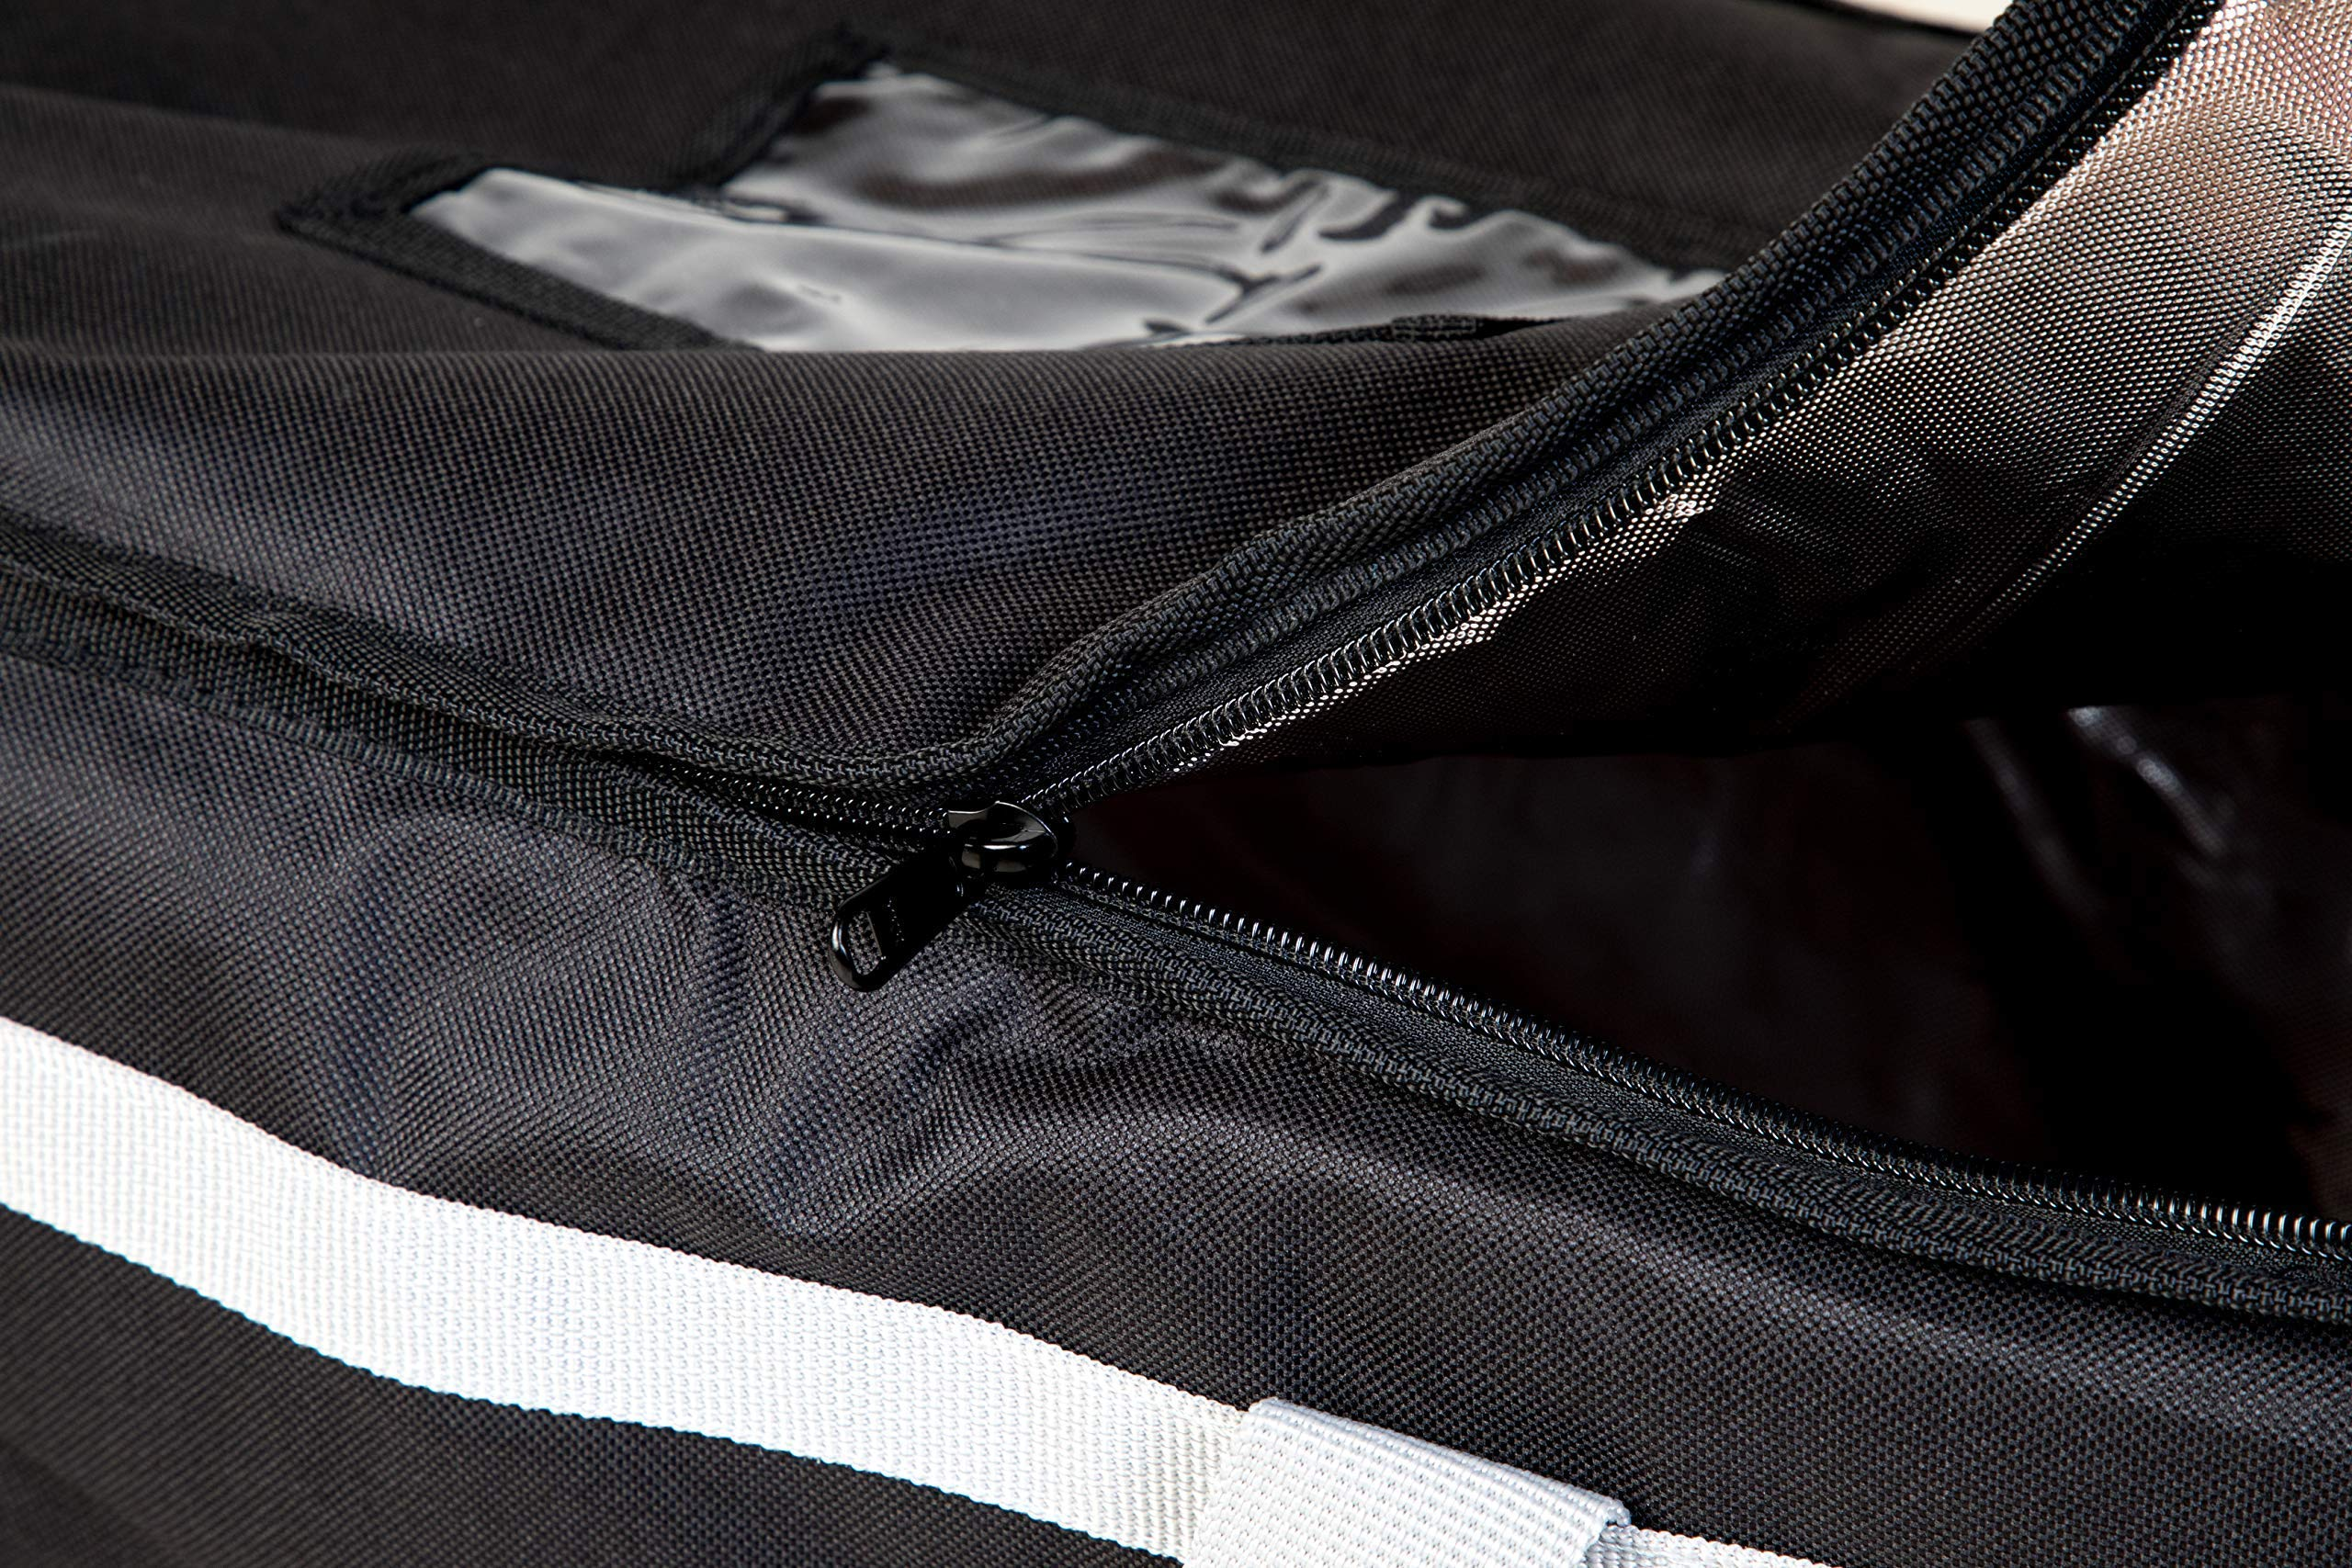 Candid- Insulated Food Delivery Bag (21''L x 14''W x 15''H), Hot/Cold Thermal Lightweight Grocery, Catering, Delivery or Party Bag. by CANDID (Image #4)